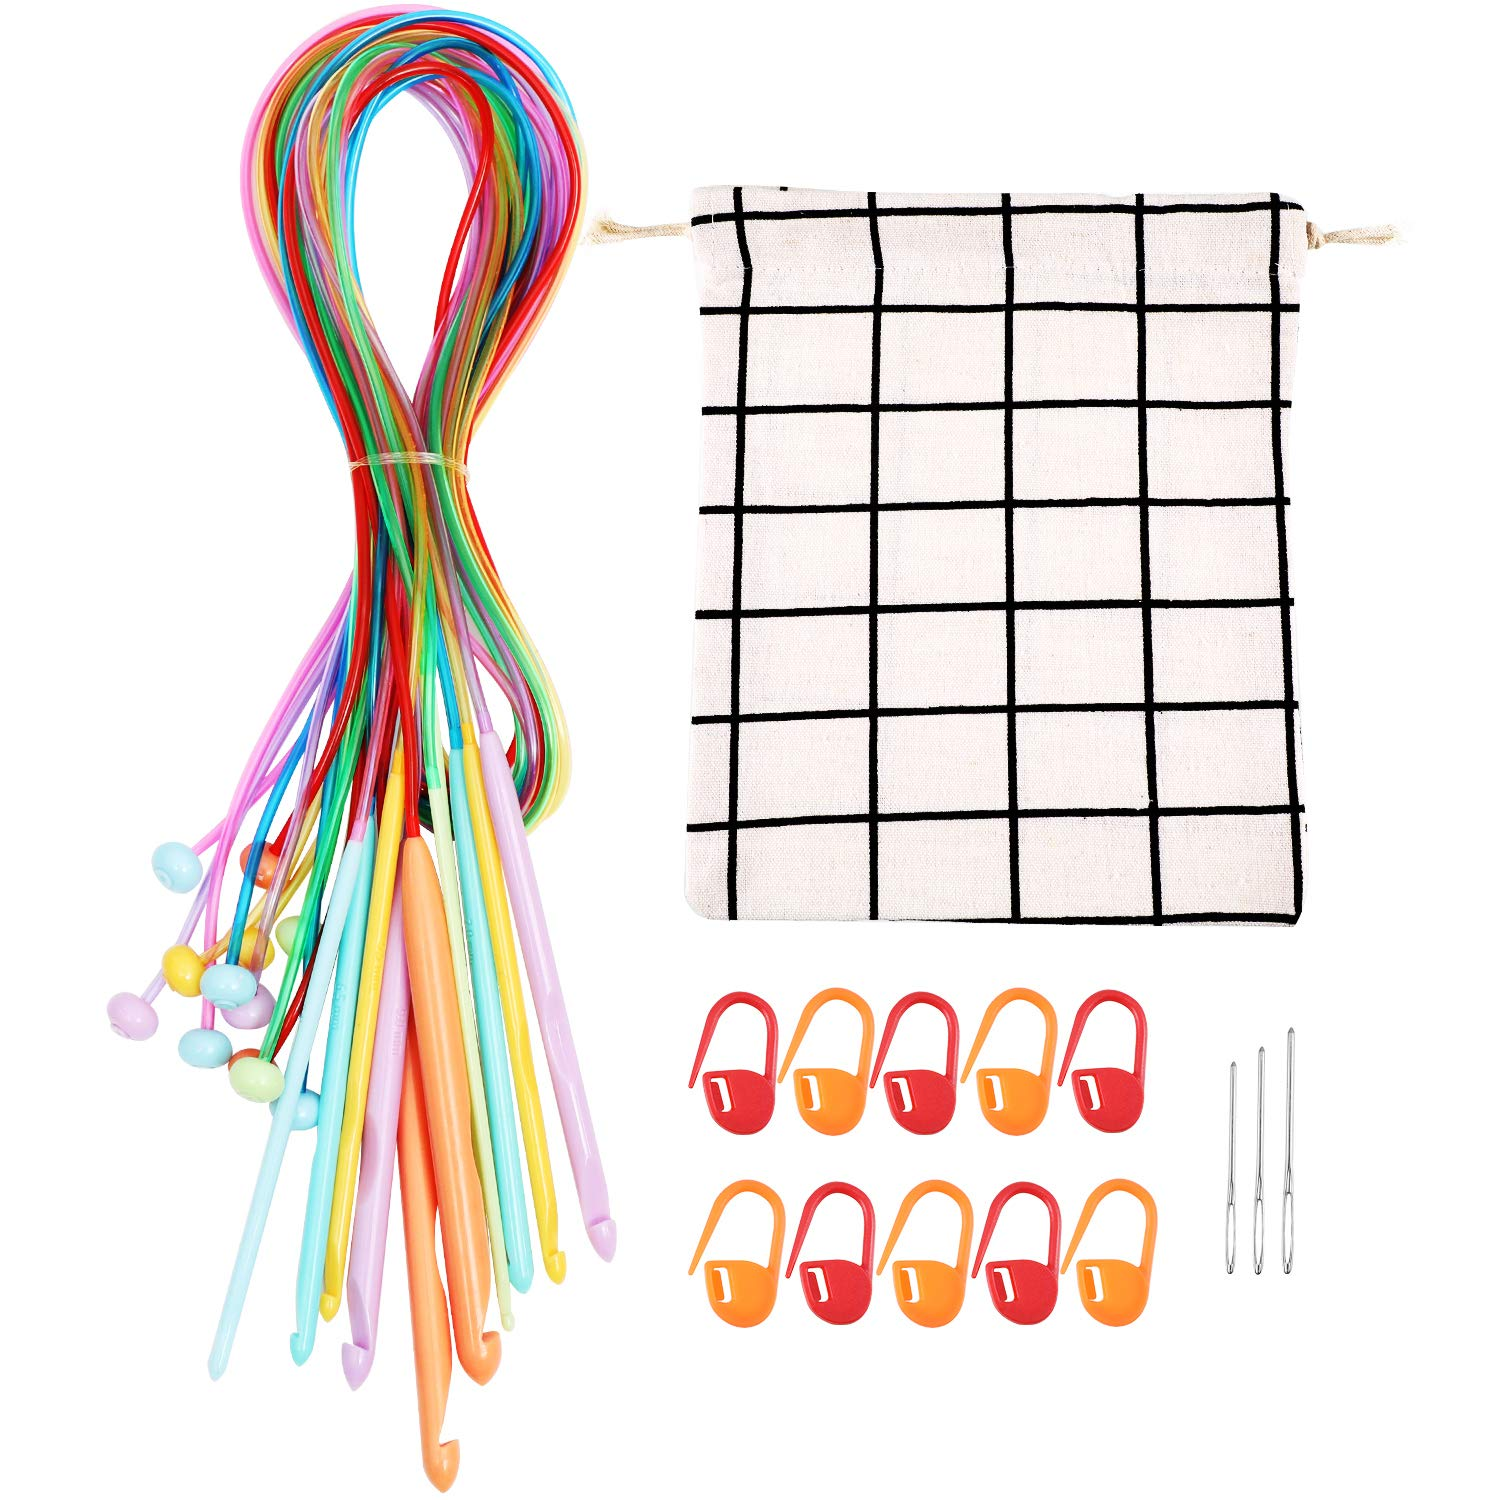 12 Pieces Afghan Tunisian Carpet Crochet Hooks Afghan Plastic Carpet Knitting Needles with Bag, 10 Pieces Stitch Markers and 3 Pieces Blunt Yarn Needles